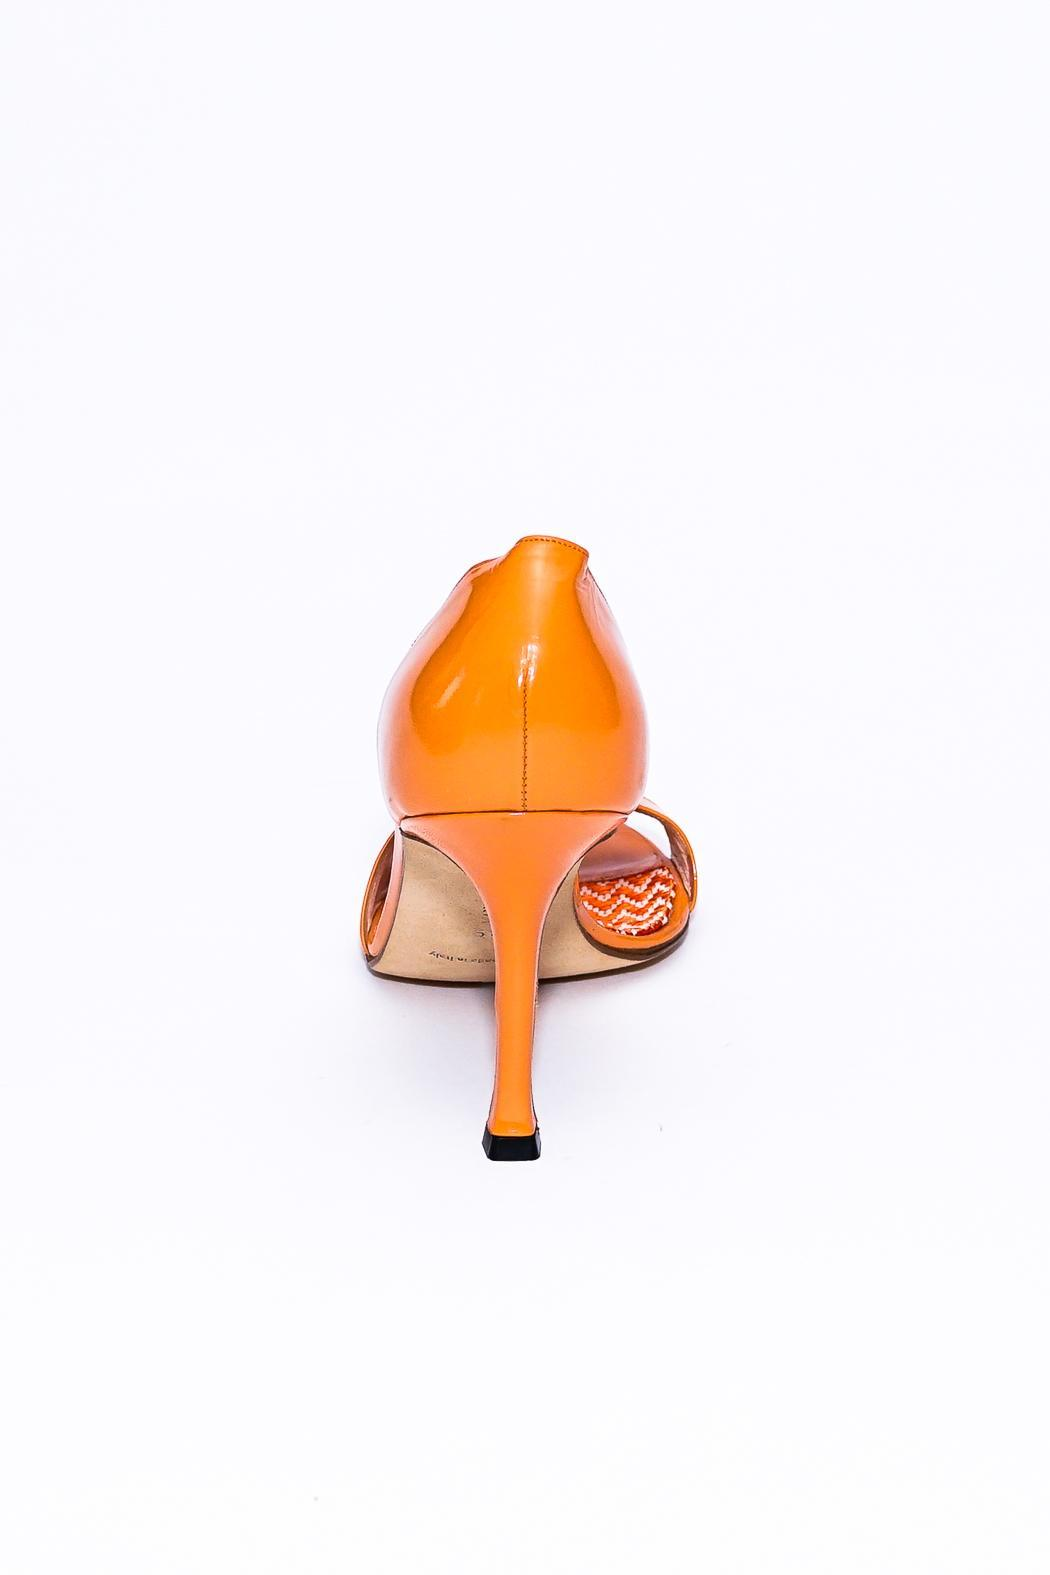 c881ee9ec5b Manolo Blahnik Bright Orange Heels from Florida by Red Carpet ...